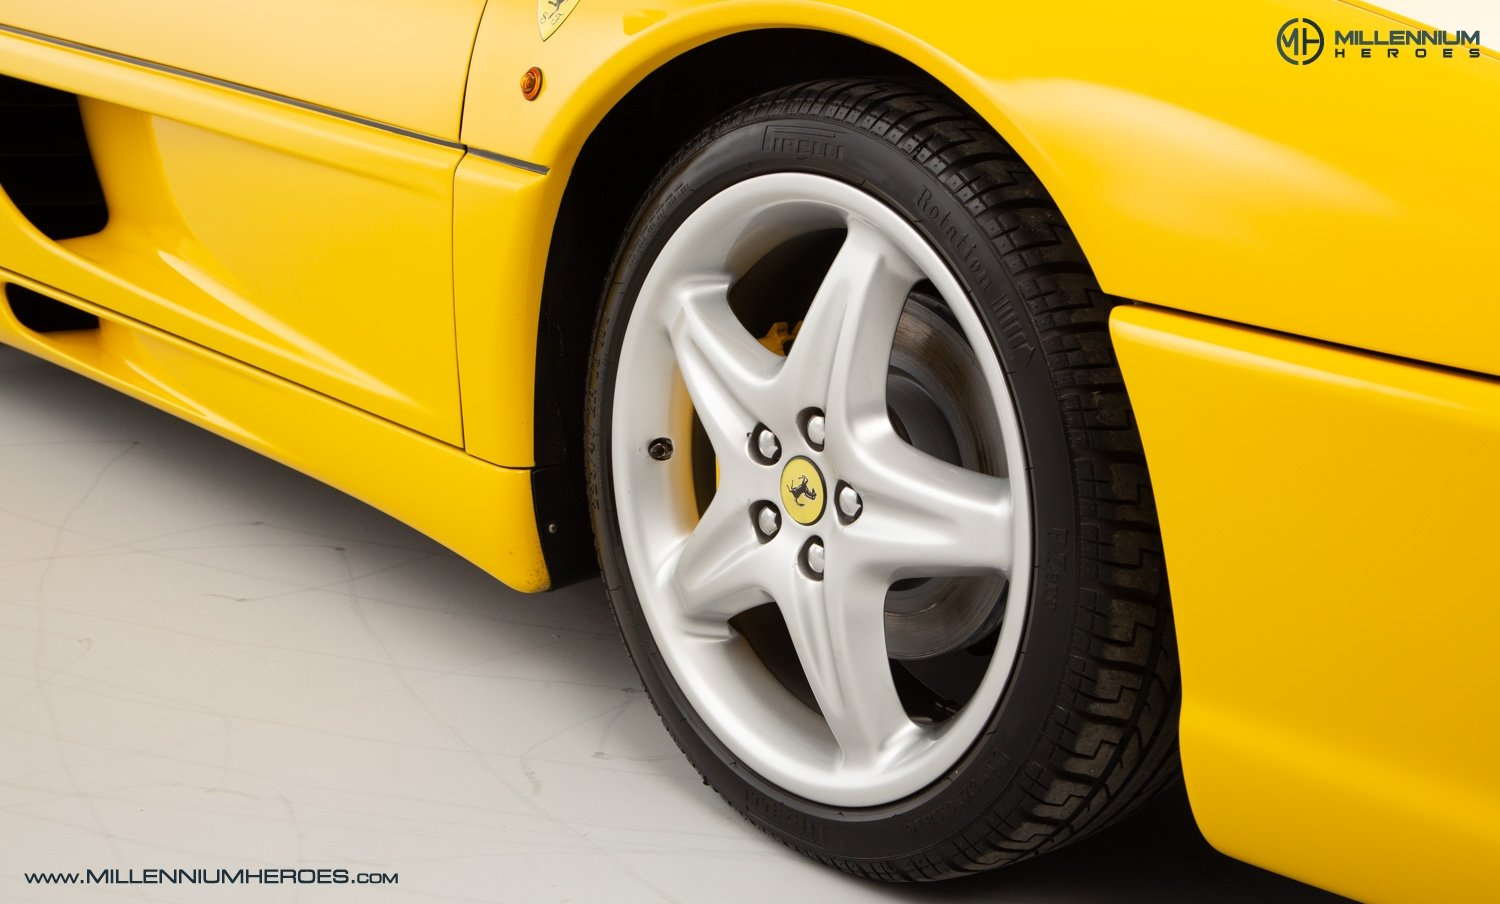 1997 FERRARI F355 SPIDER // 6 SPEED MANUAL // UK RHD // FSH For Sale (picture 21 of 22)